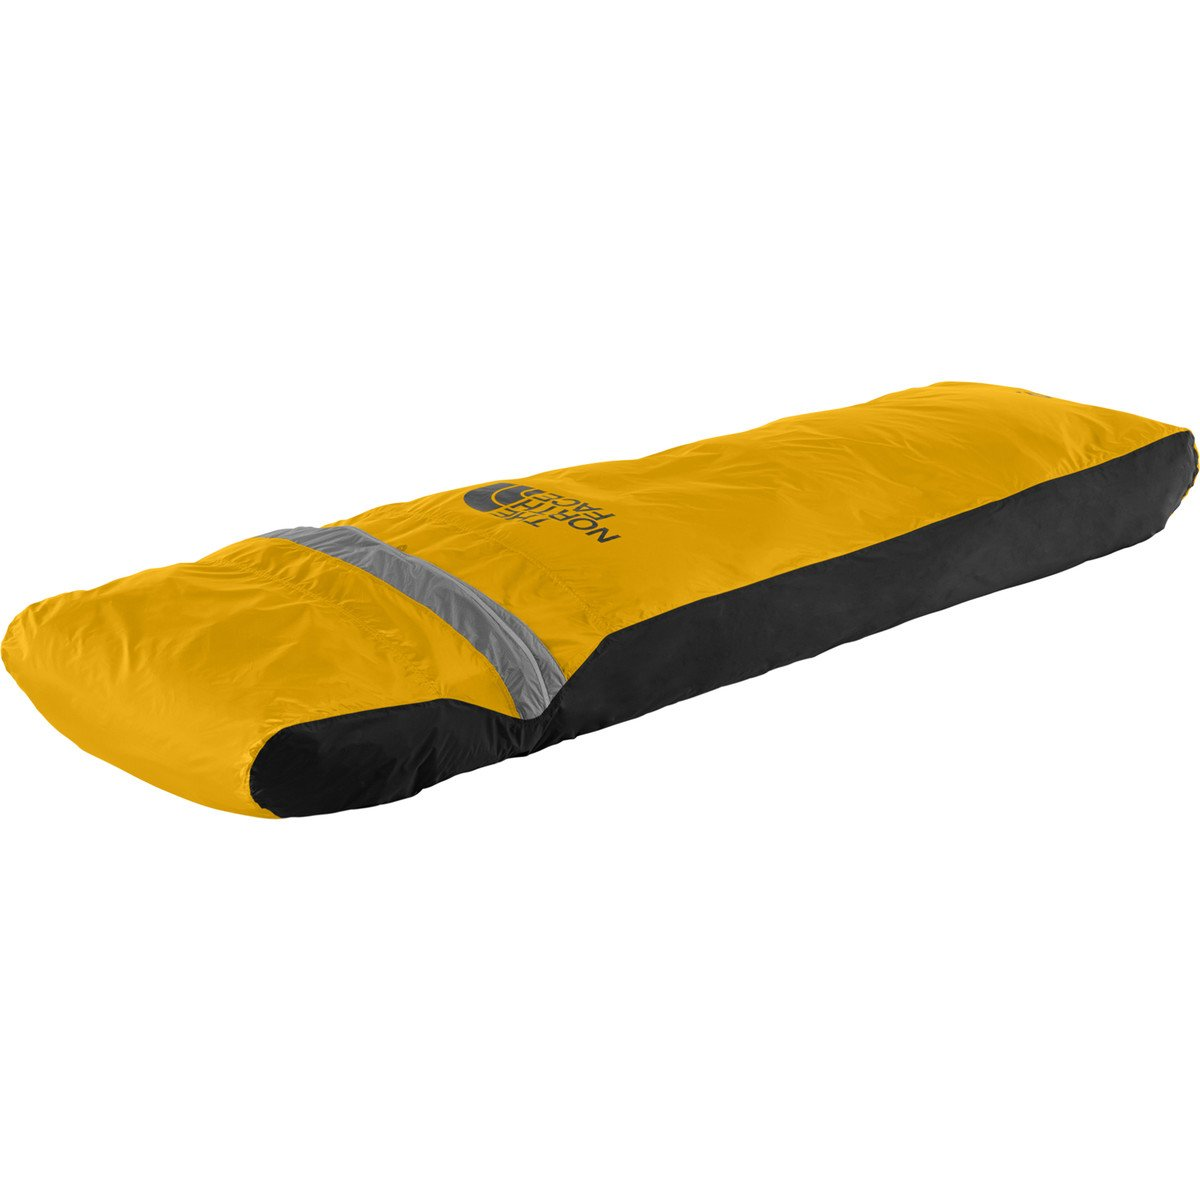 The North Face Assault Bivy Tiendas, Unisex, Dorado/Gris, Talla Única: Amazon.es: Deportes y aire libre